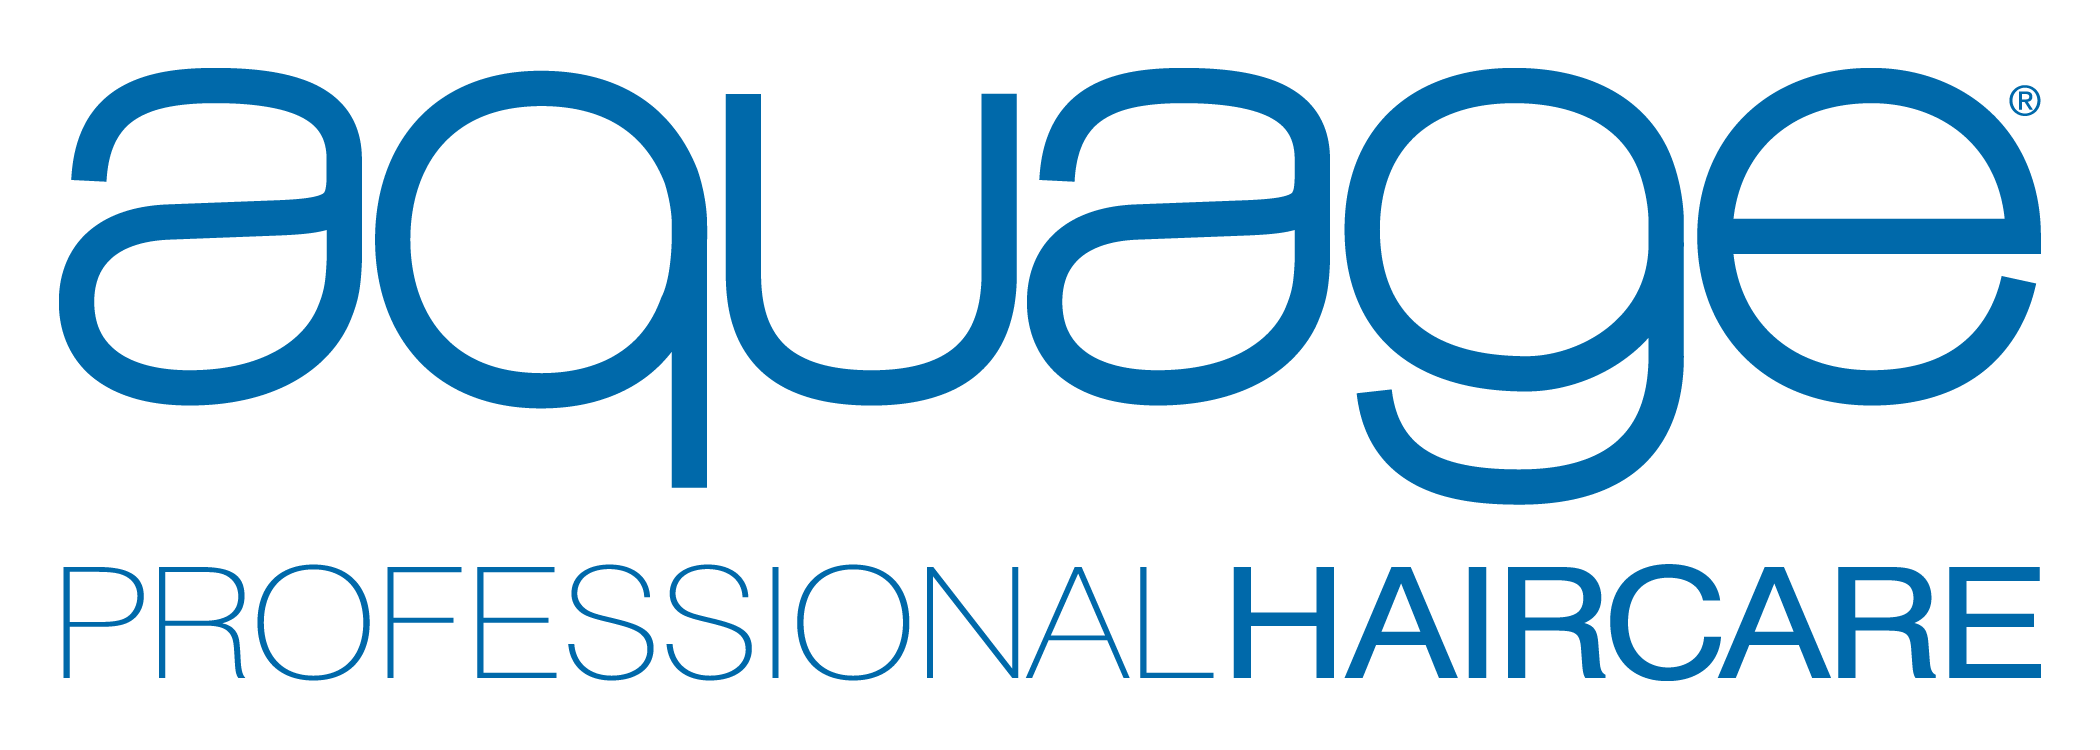 Aquage  products contains Algaeplex, a blend of eight different types of seaweed, algae, and kelp. The natural oils and plant extracts are infused with Omega-rich oils to nurture, moisturize, strengthen, and protect hair.